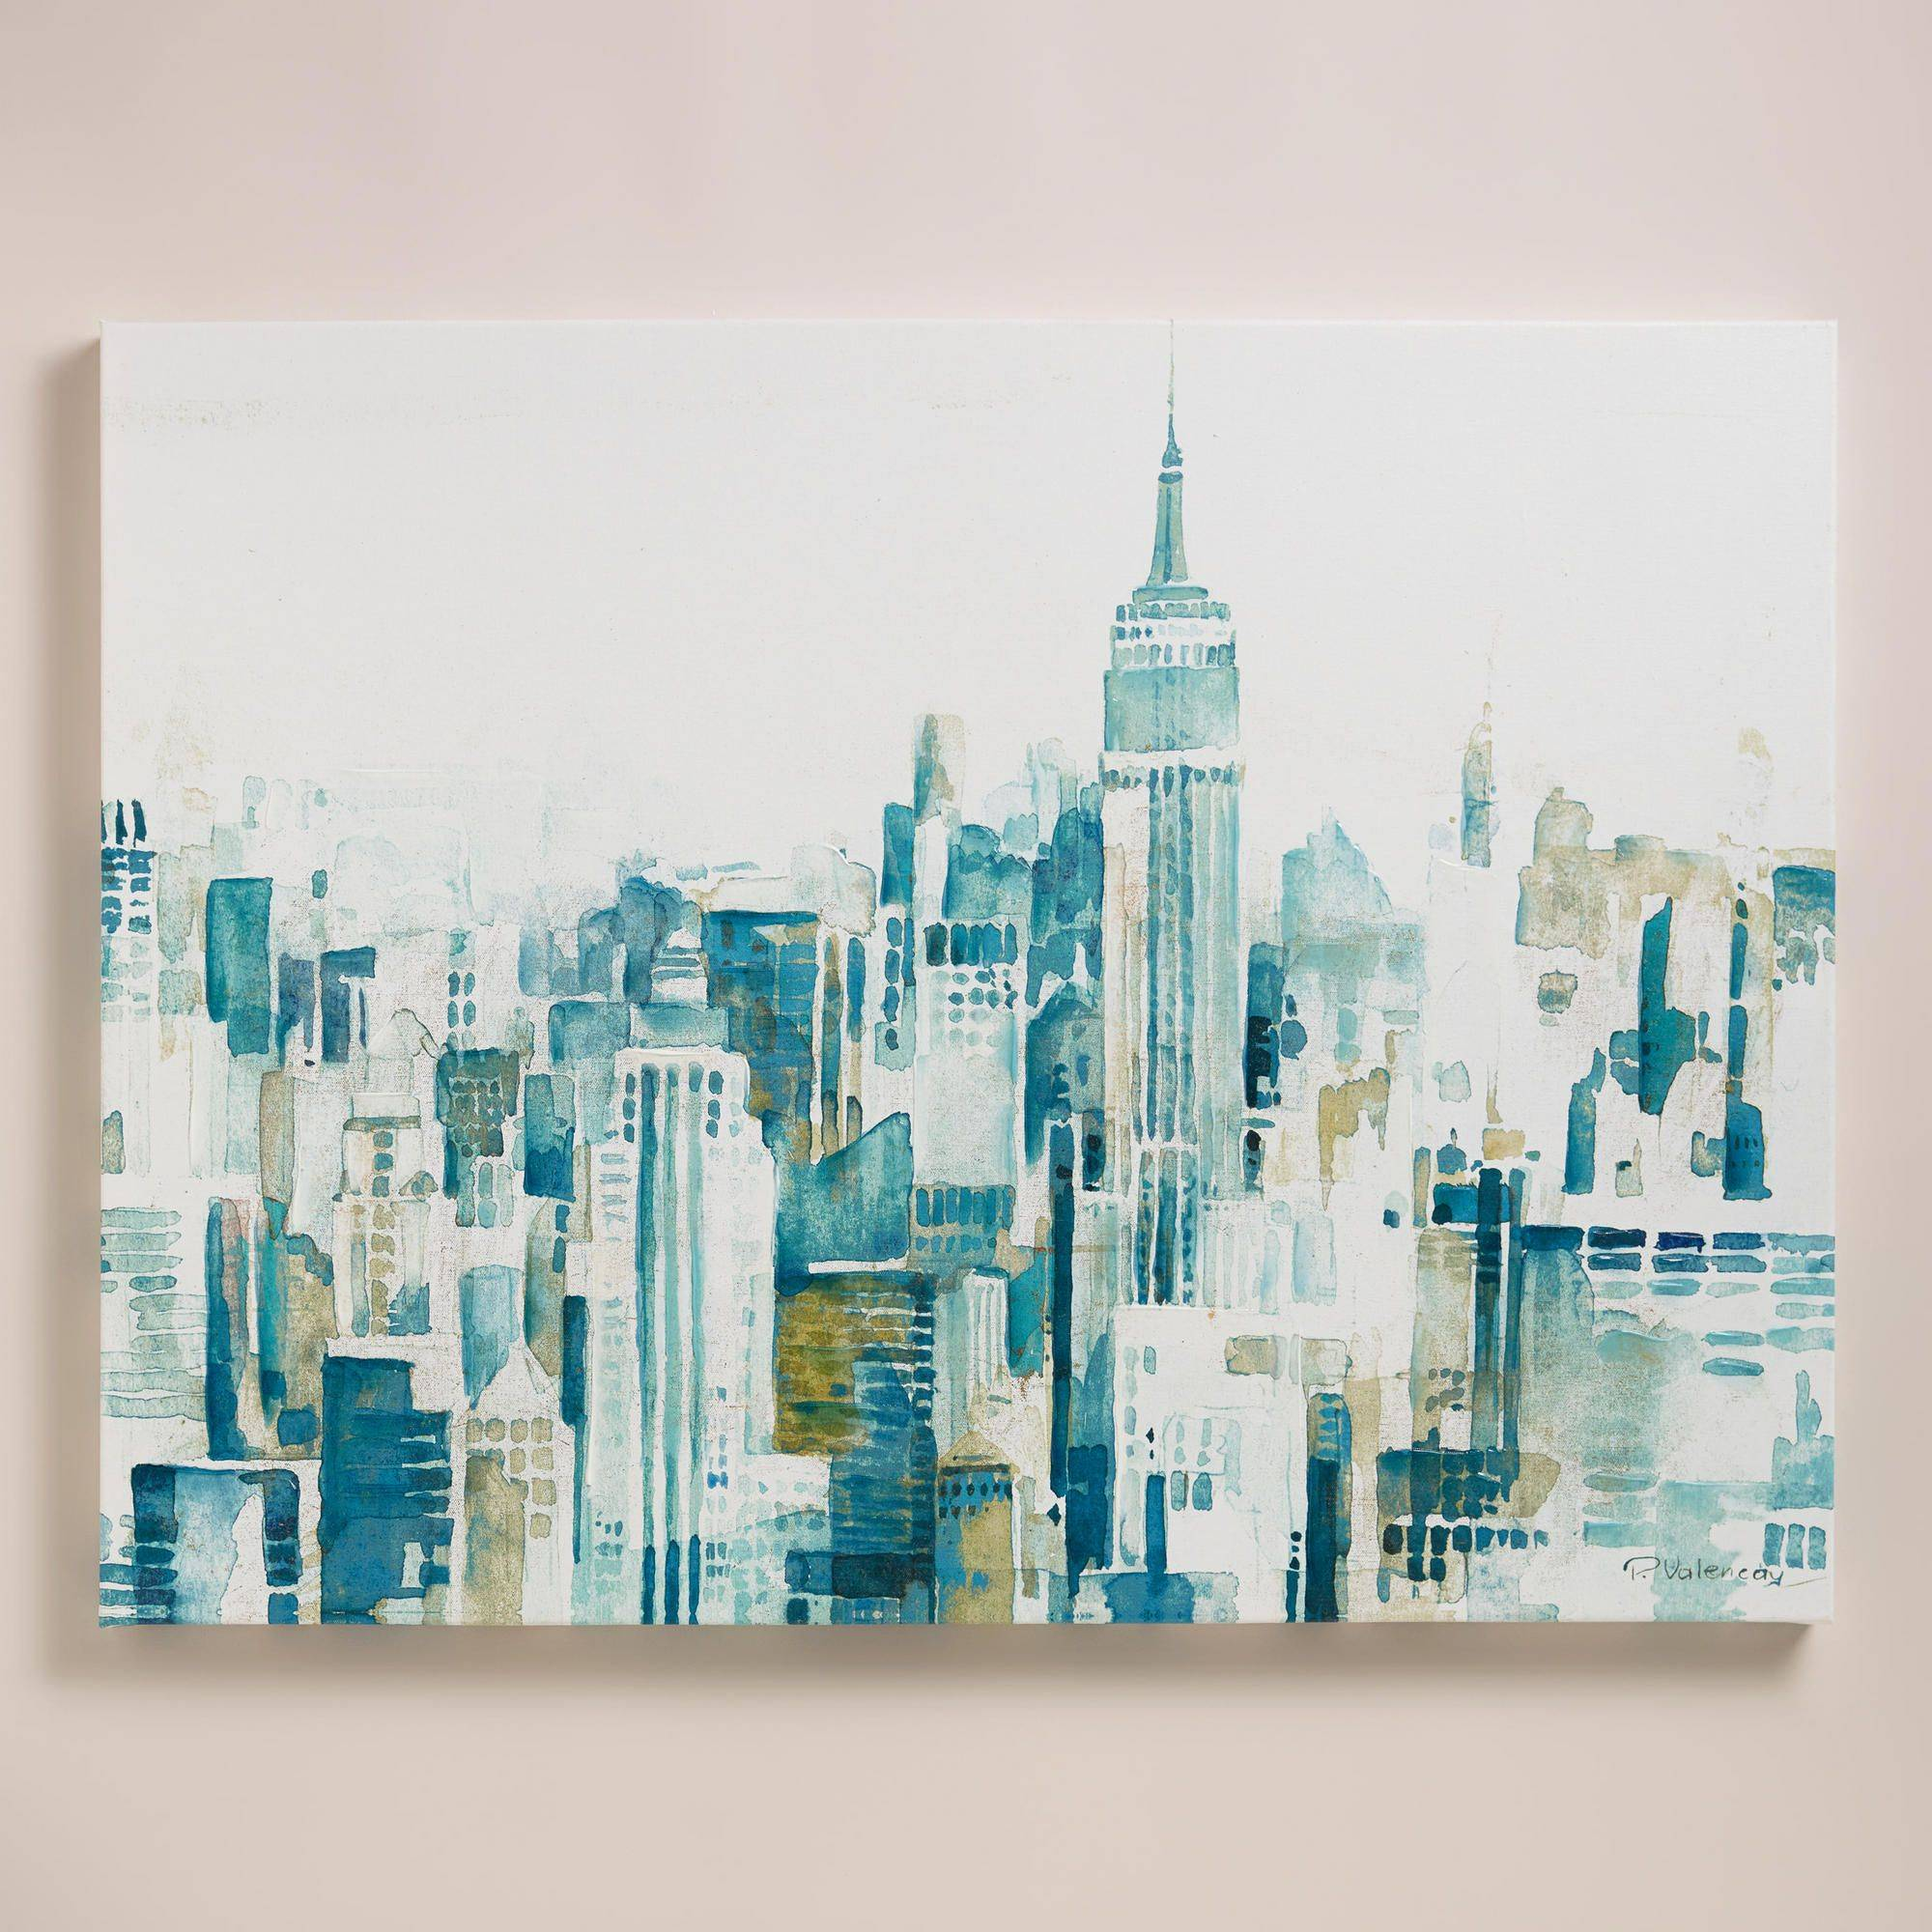 "Ela Jarek Awesome Watercolor City"" by Ela Jarek"